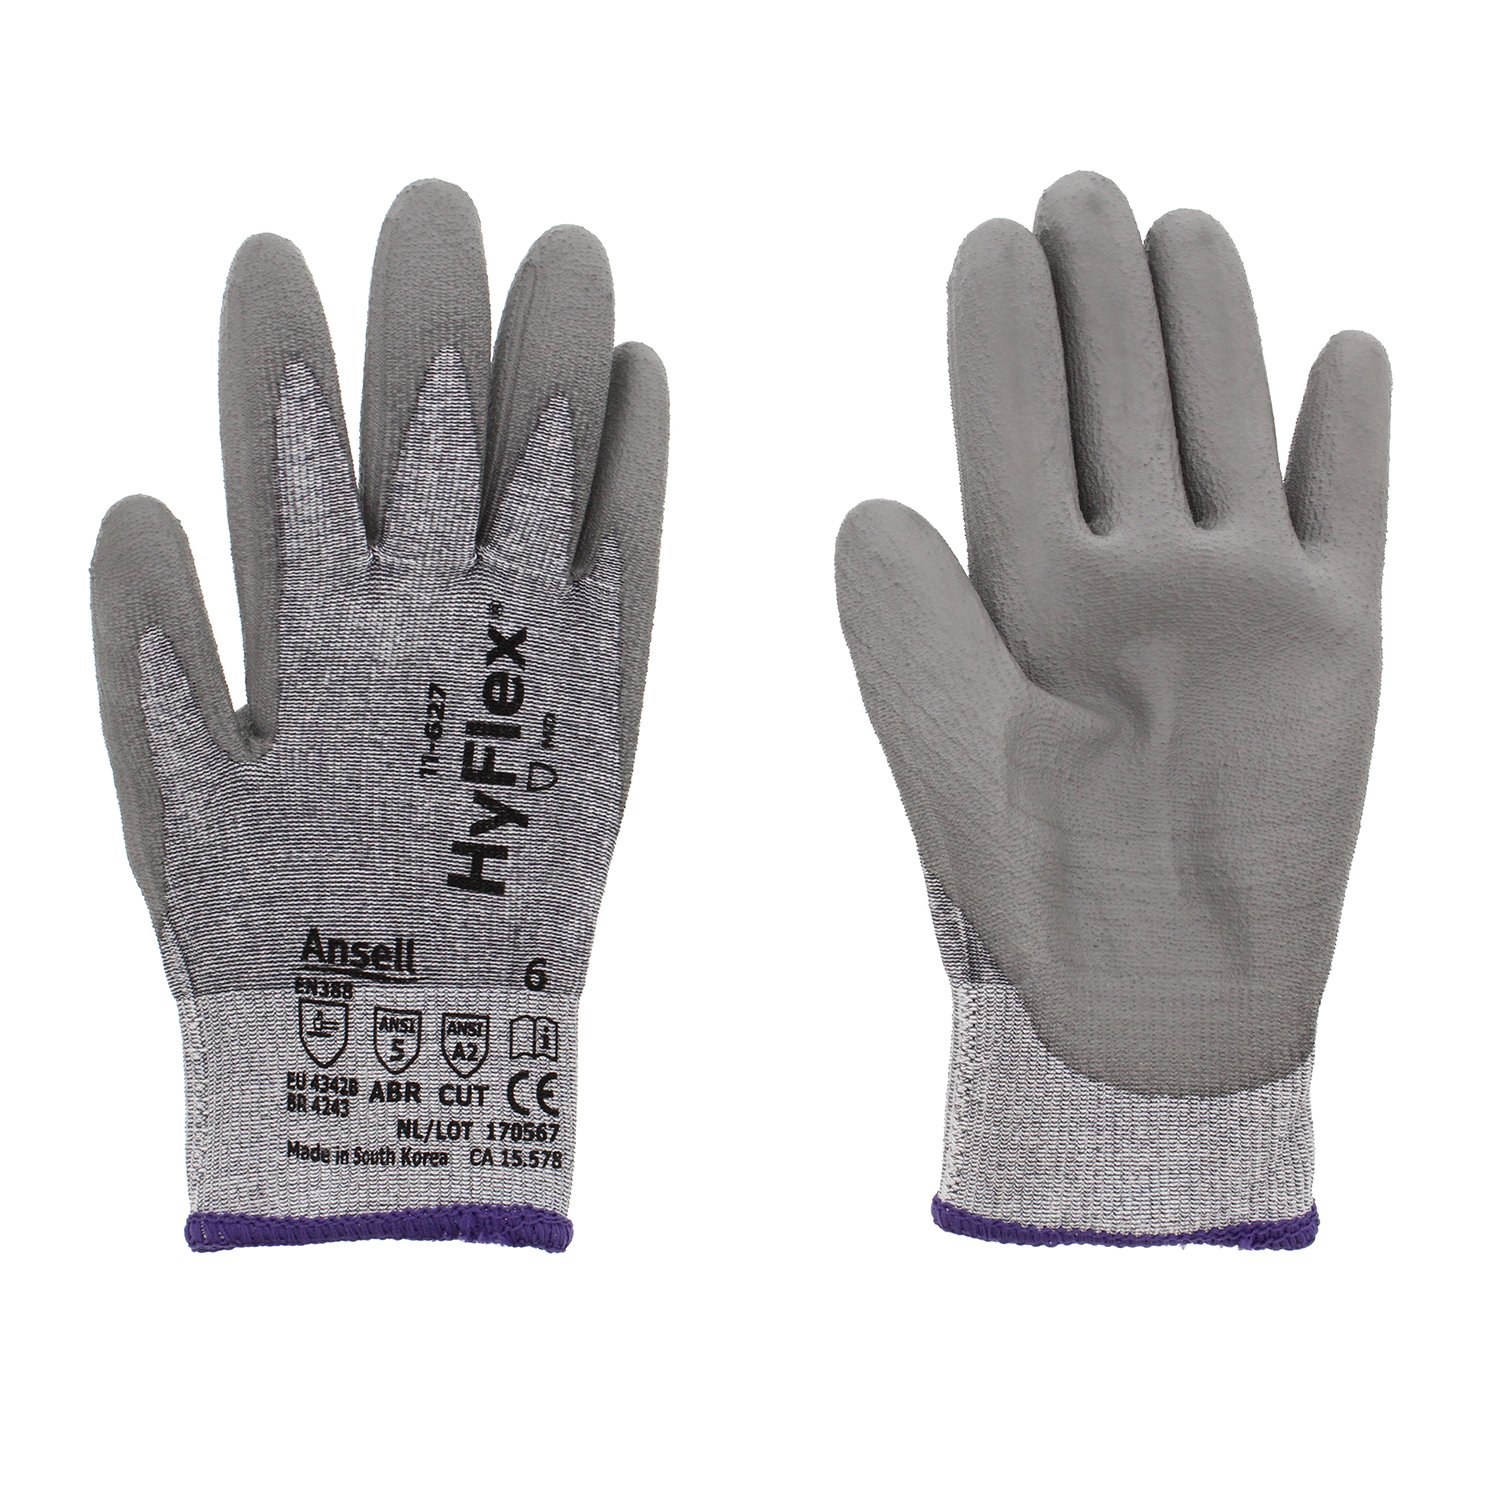 Ansell HyFlex 11-627 Lycra Light Duty Safety Glove with DSM Dyneema Technology, Abrasion/Cut Resistant, Size 6, Gray (Pack of 12 Pair)